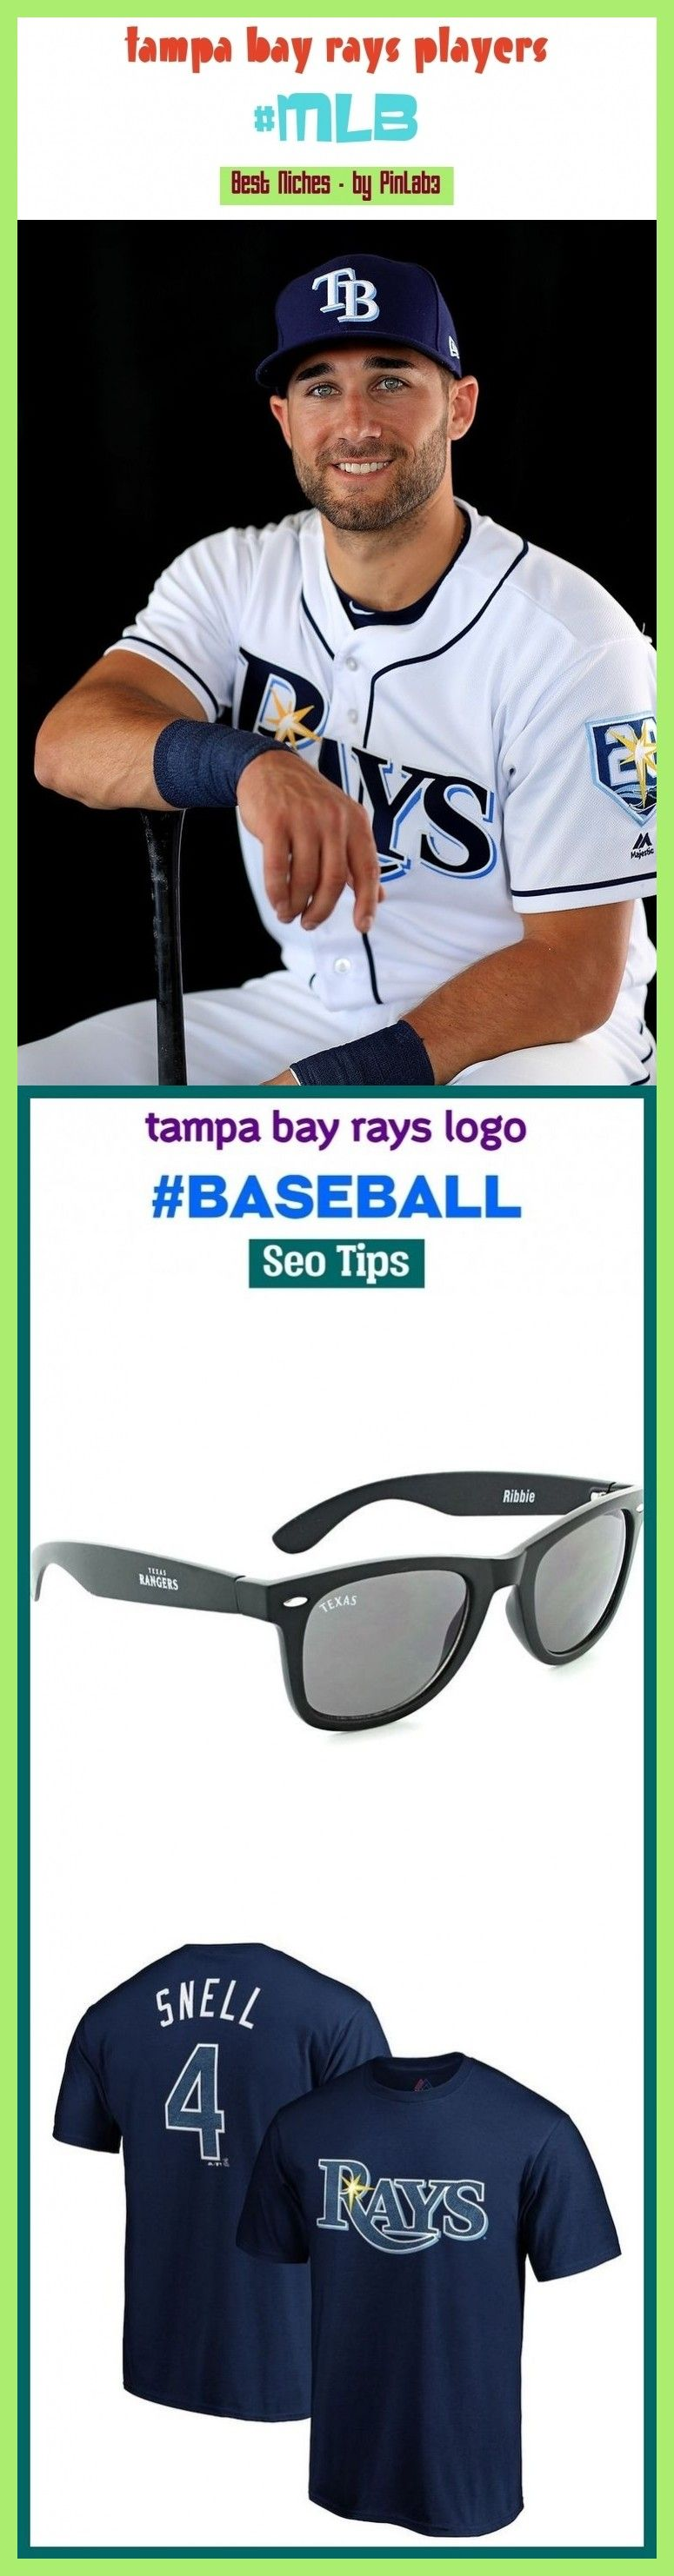 Tampa Bay Rays Players Mlb Sports Tampa Bay Rays Logo Tampa Bay Rays Wallpaper Tampa Bay Rays Outfit Tampa Bay In 2020 Tampa Bay Rays Tampa Tampa Bay Rays Outfit